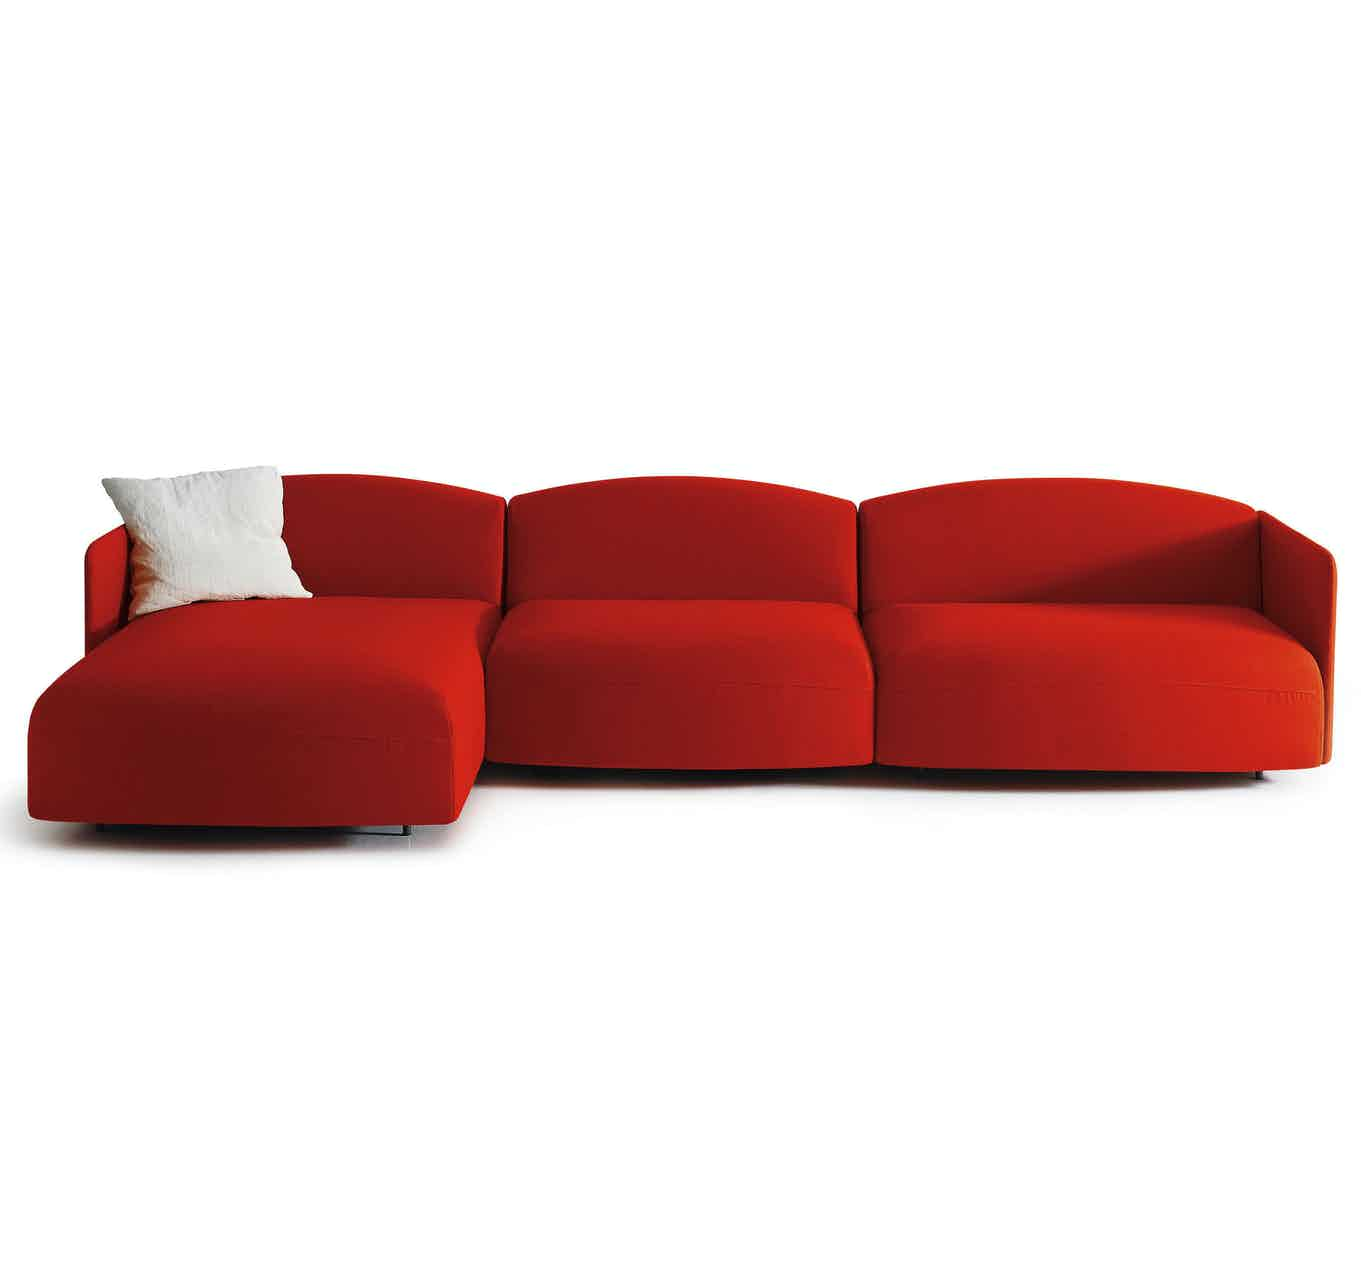 Arflex Red Soft Beat Sofa Haute Living